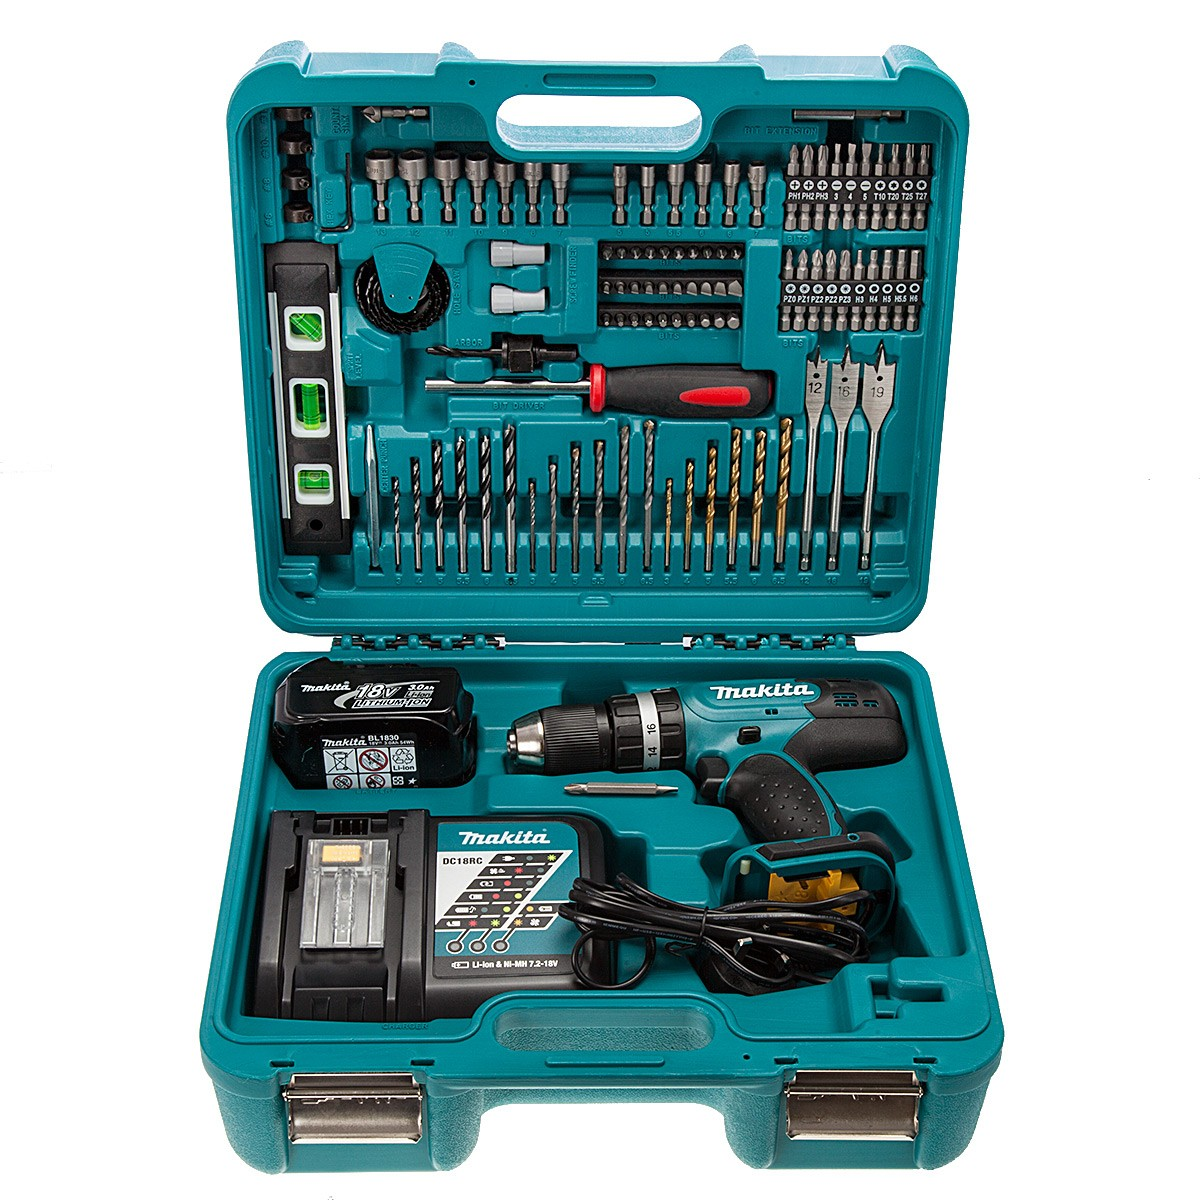 makita dhp453rftk lxt cordless 18v li ion combi drill 1 x. Black Bedroom Furniture Sets. Home Design Ideas